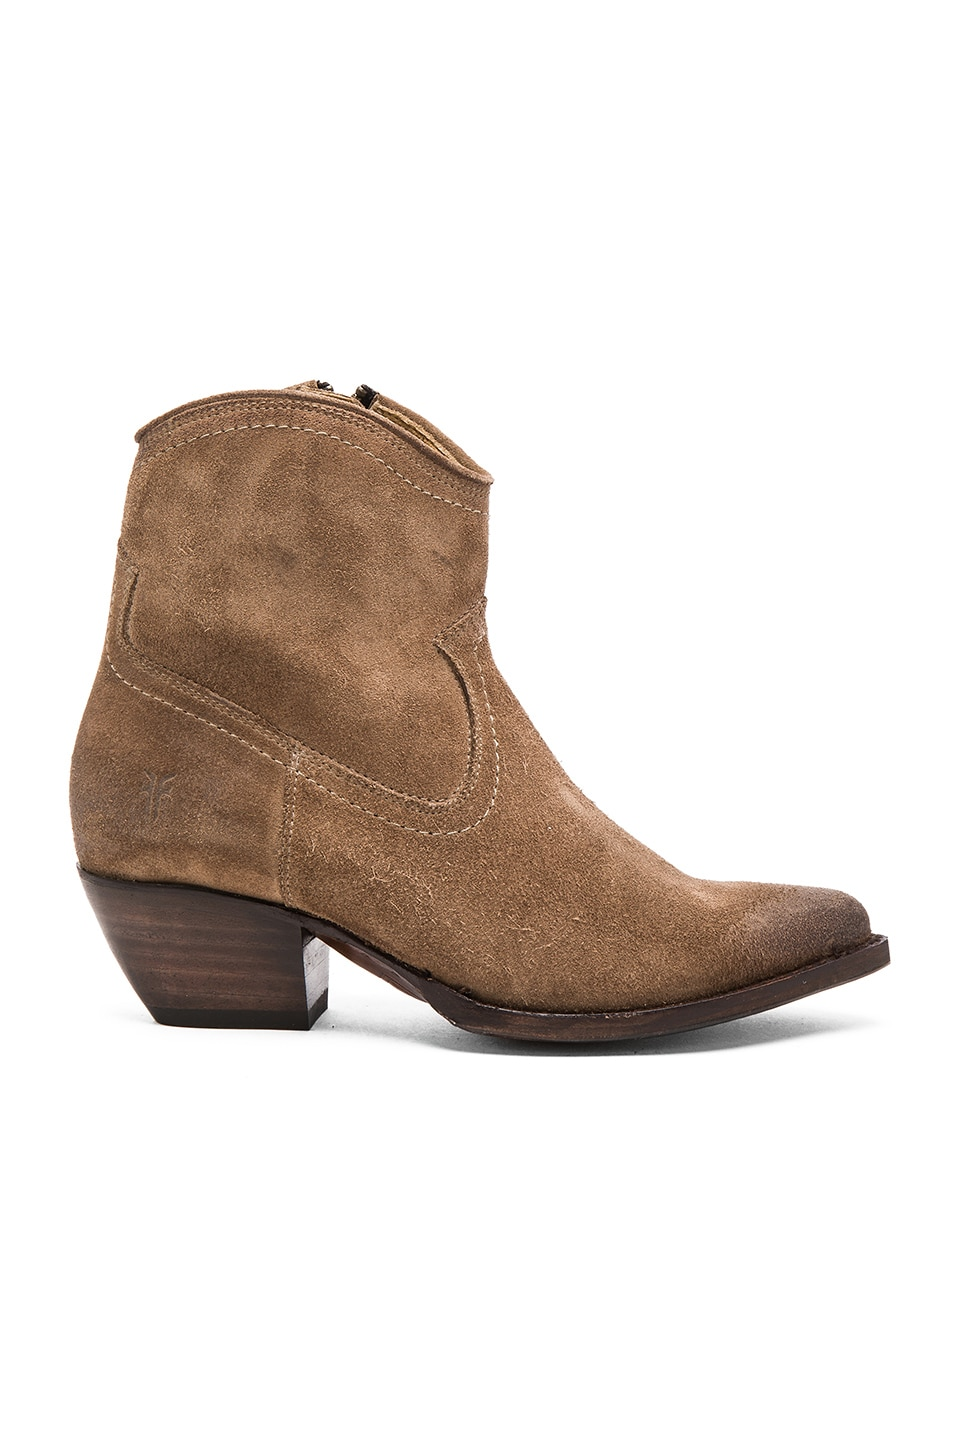 Photo of Sacha Short Boot by Frye shoes